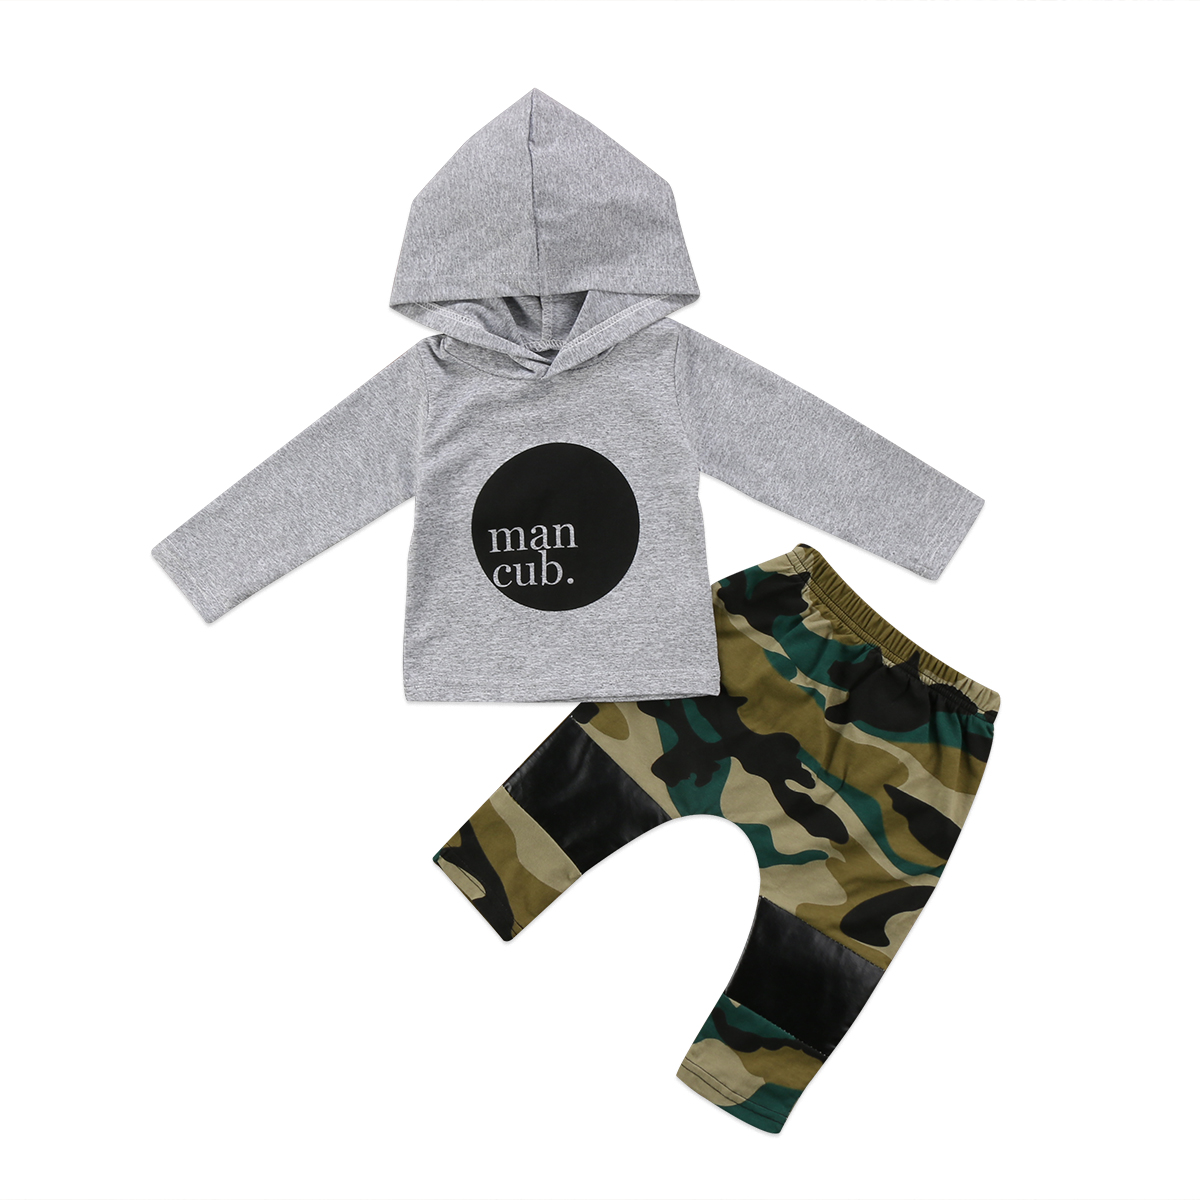 2pcs Newborn Toddler Infant Kids Baby Boy Clothes Hoodie+Camo Long Pants Fashion Fall Outfits Set